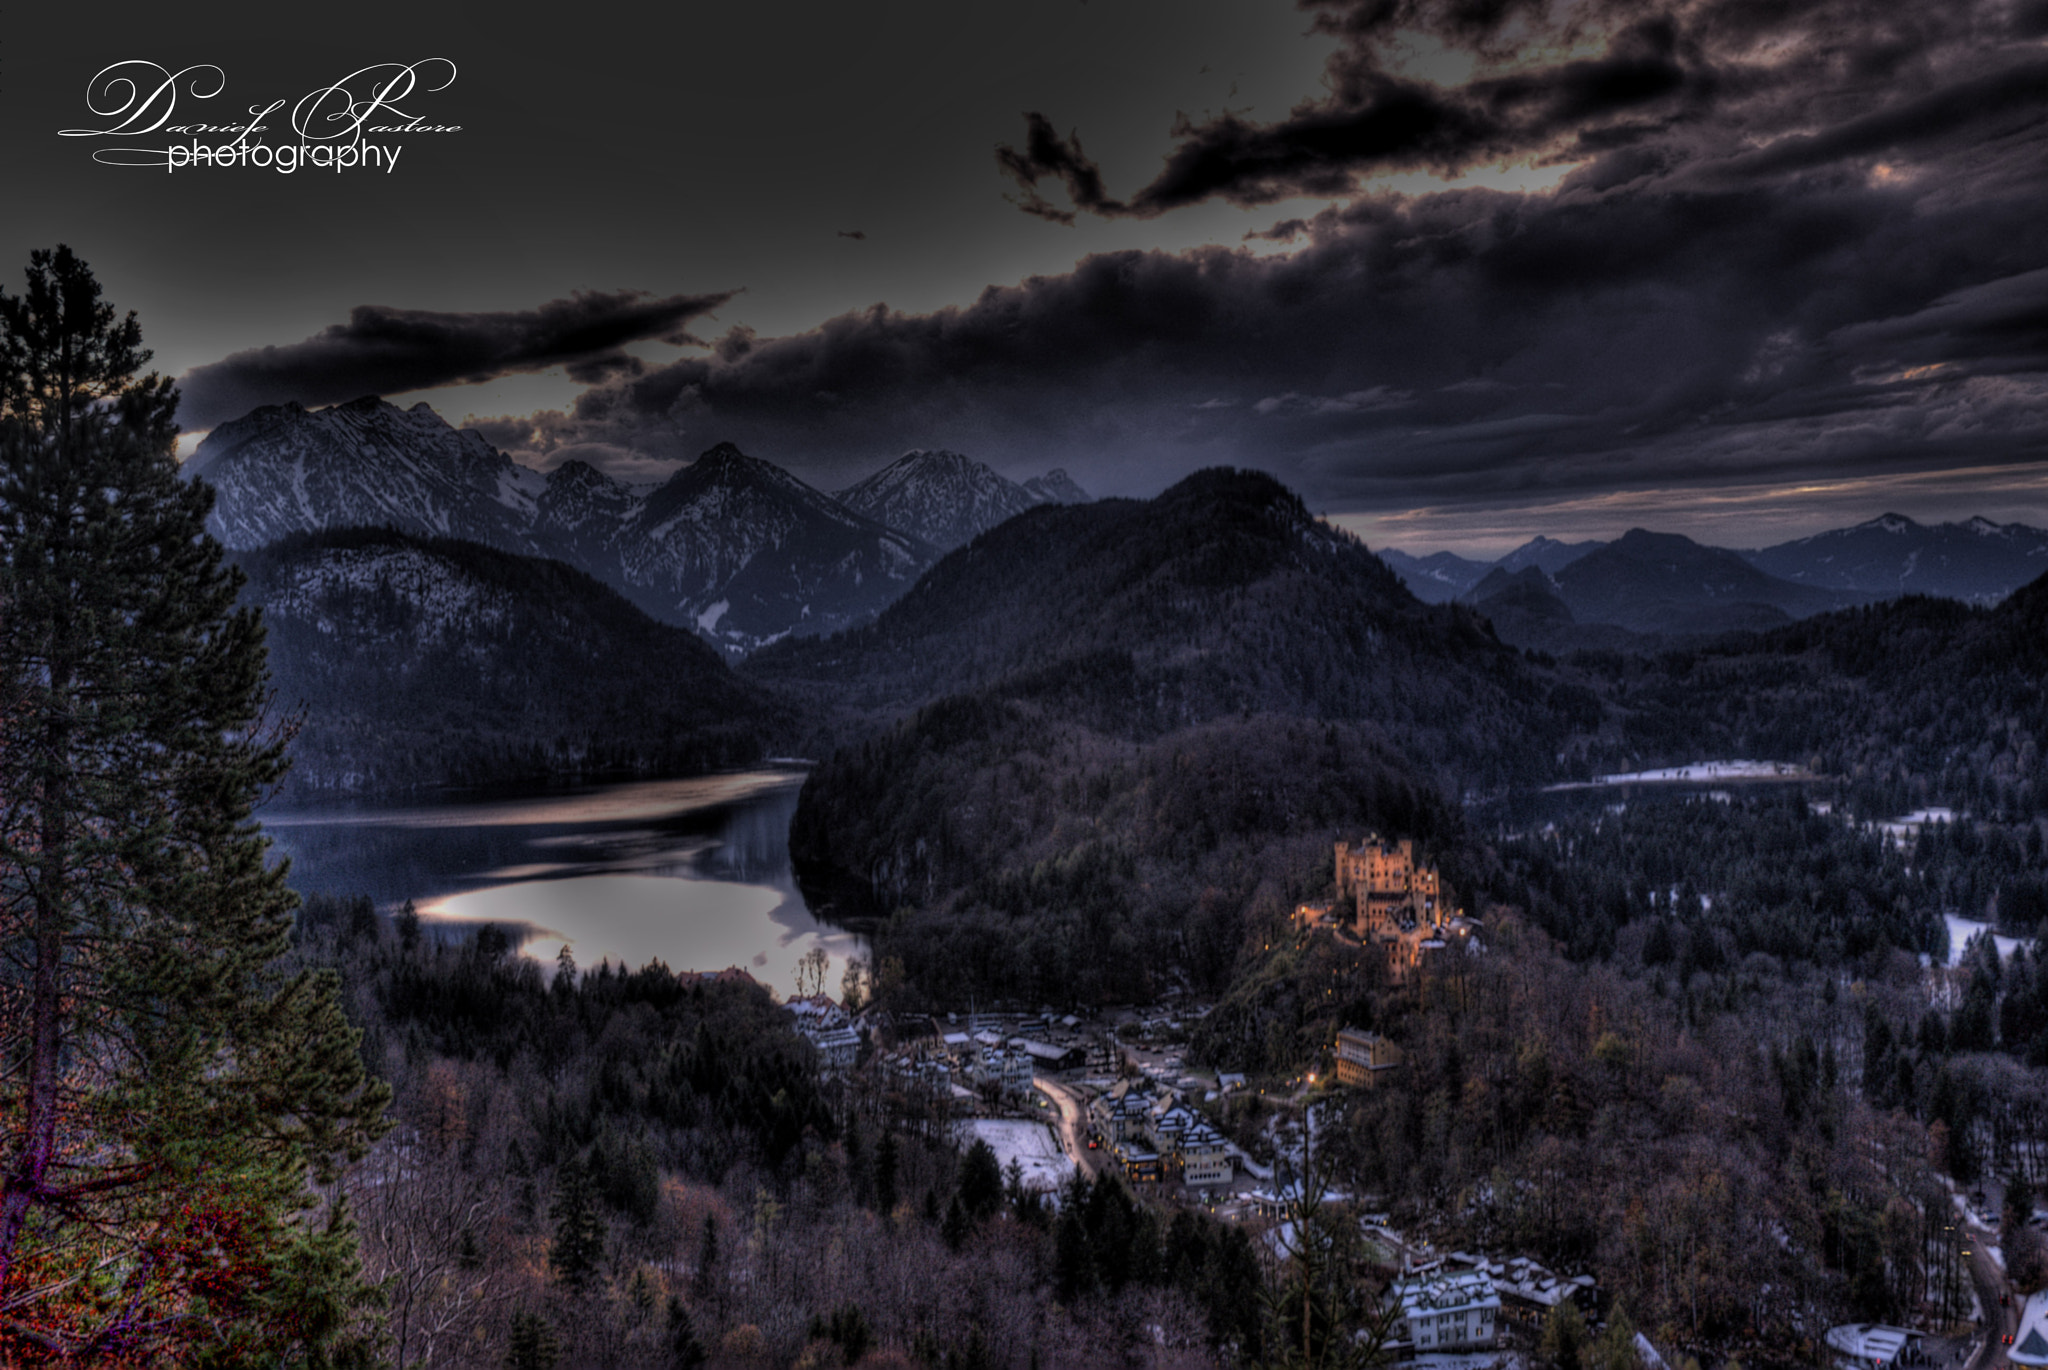 Photograph Hohenschwangau by Daniele Pastore on 500px